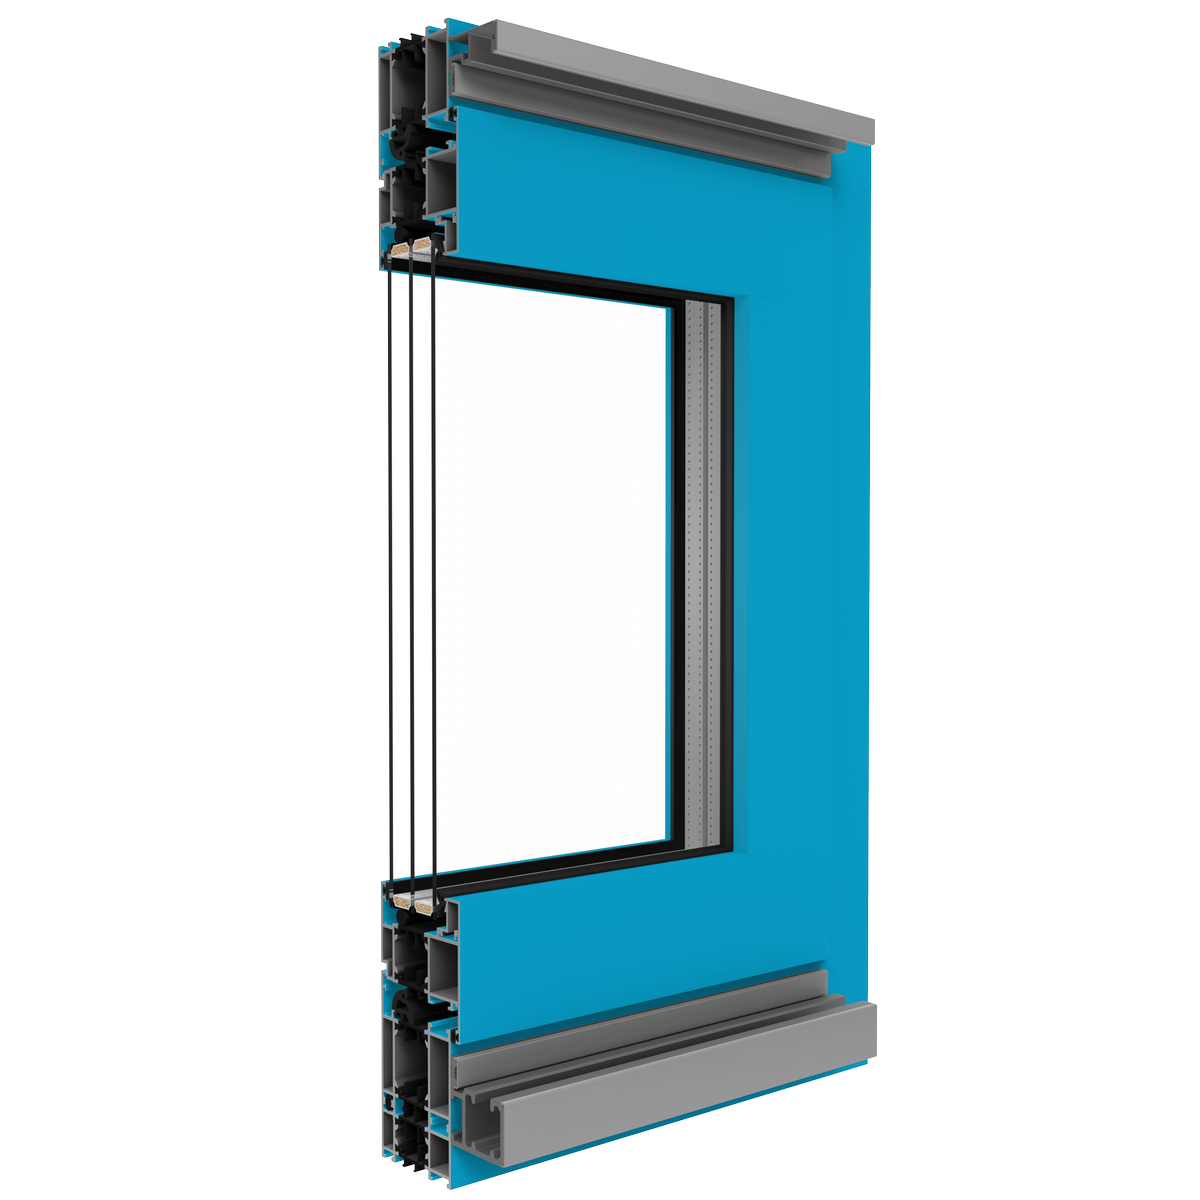 MB-70/ MB-70HI - Folding doors